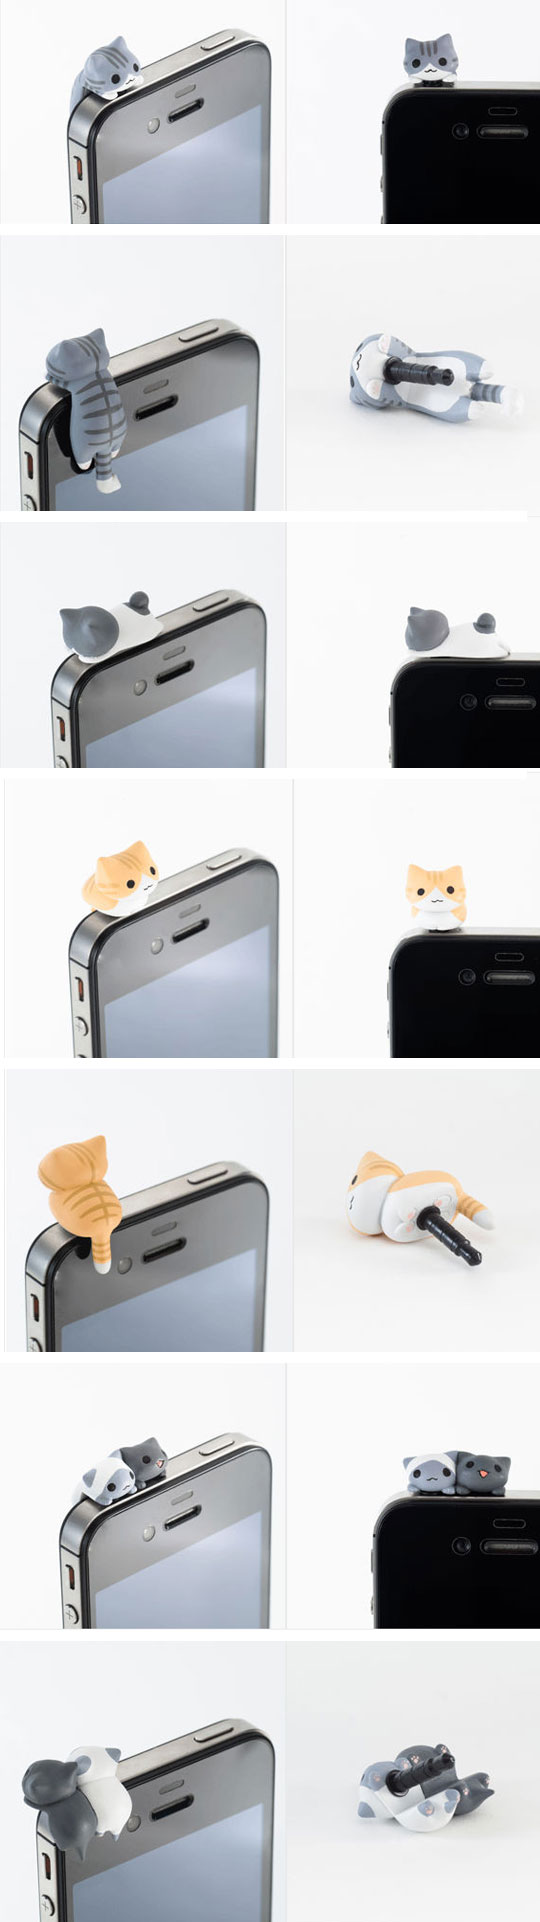 iPhone-accessories-cat